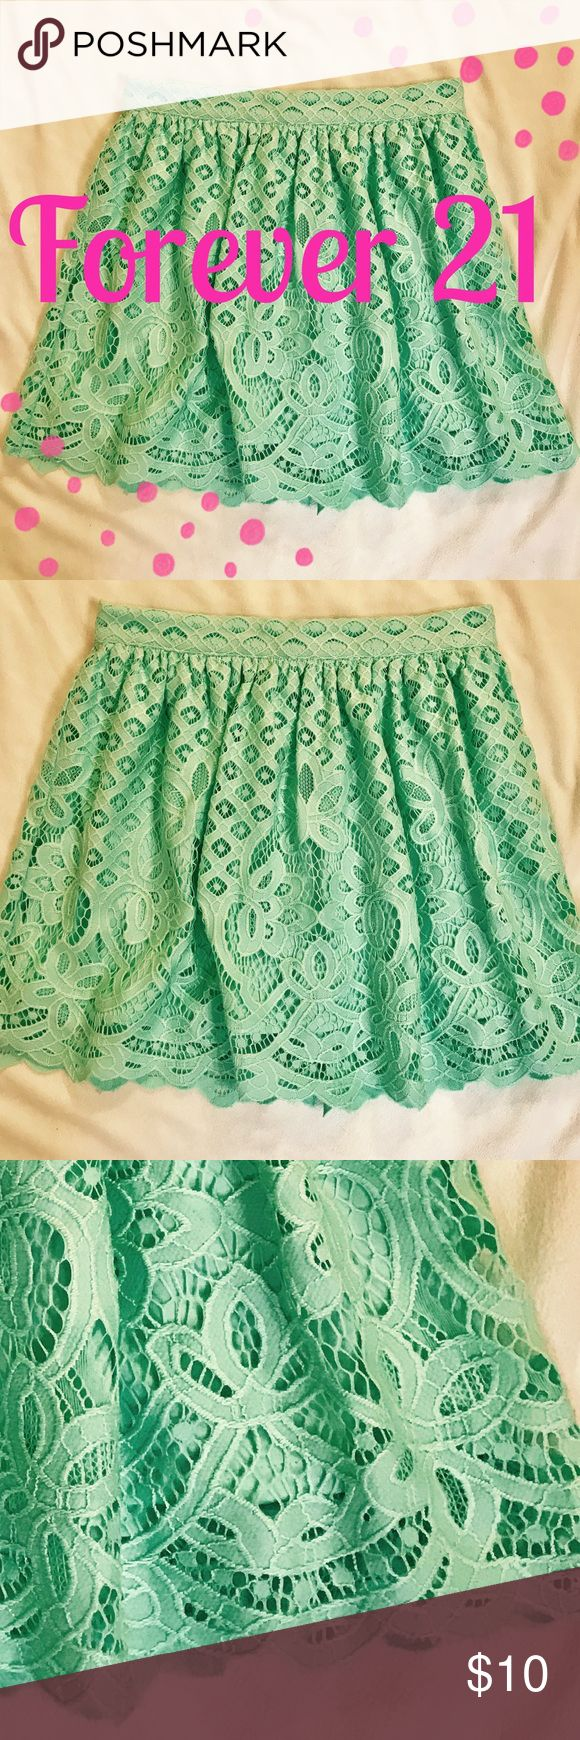 """Forever 21 Mint Green Skirt NWT Forever 21. New with tags (2017). Flirty, mint green skirt with scalloped edge. Total length is approximately 15.5"""" (13.5"""" lining). Waist 25"""" (zipper, no stretch). **Special Discount!!!** Bundle with the blouse in photo to save 15% on the pair! Please use """"make me an offer"""" so you are charged the correct amount. Forever 21 Skirts Mini"""